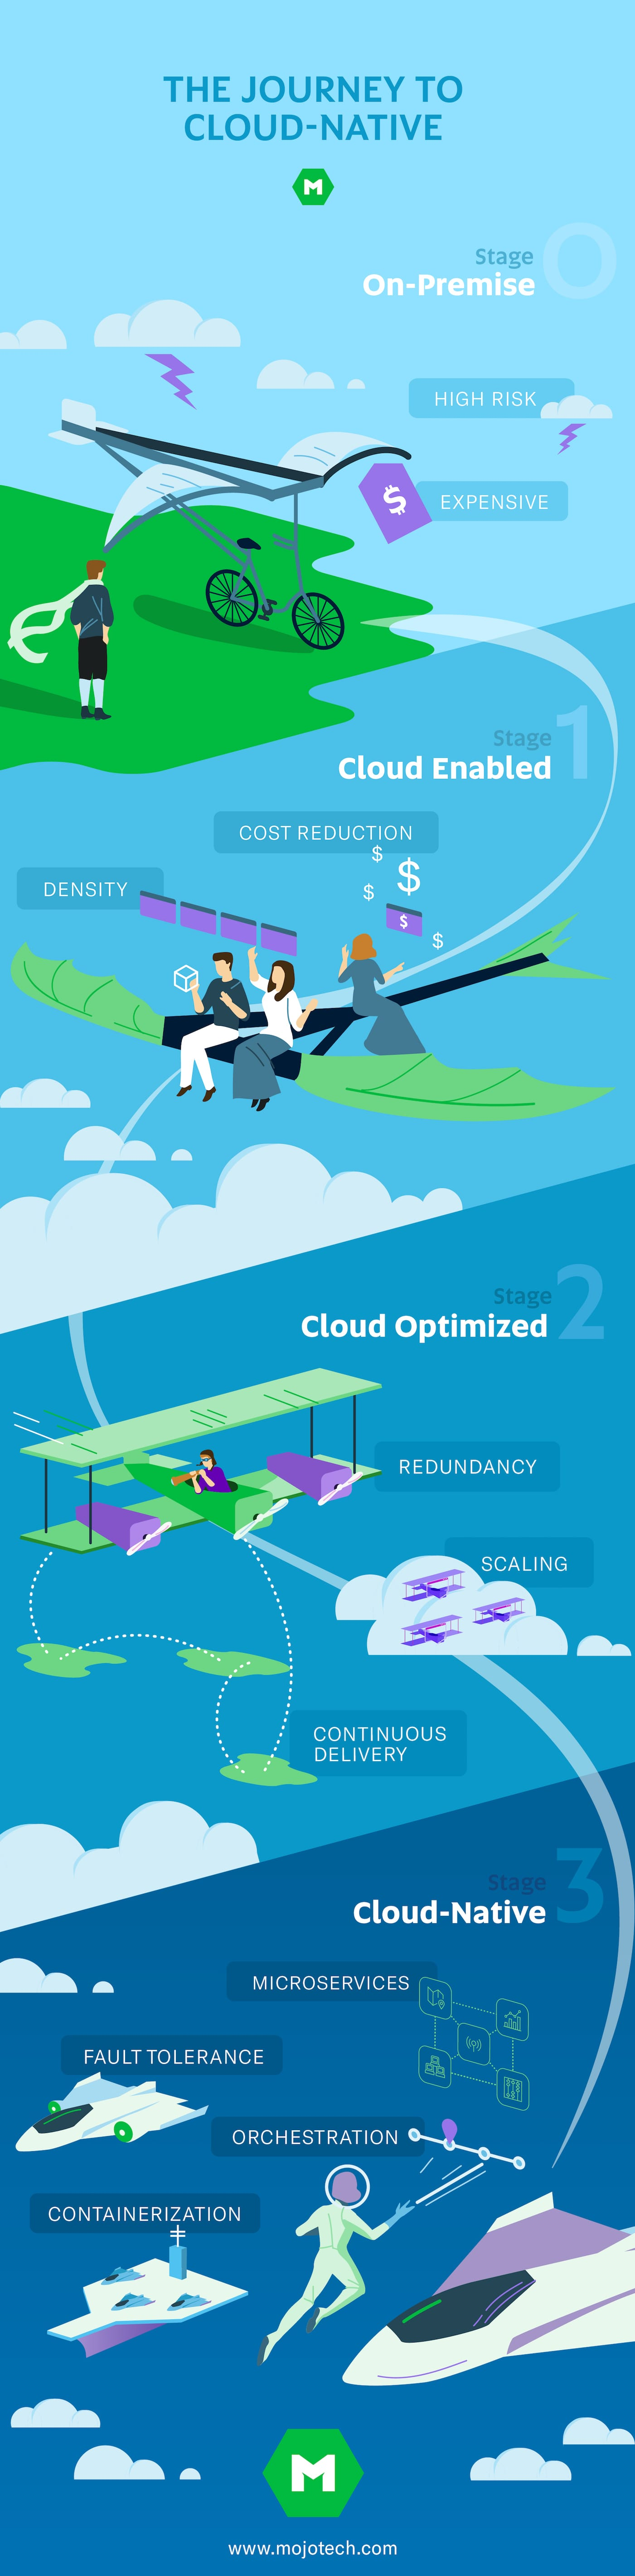 cloud-native-infographic